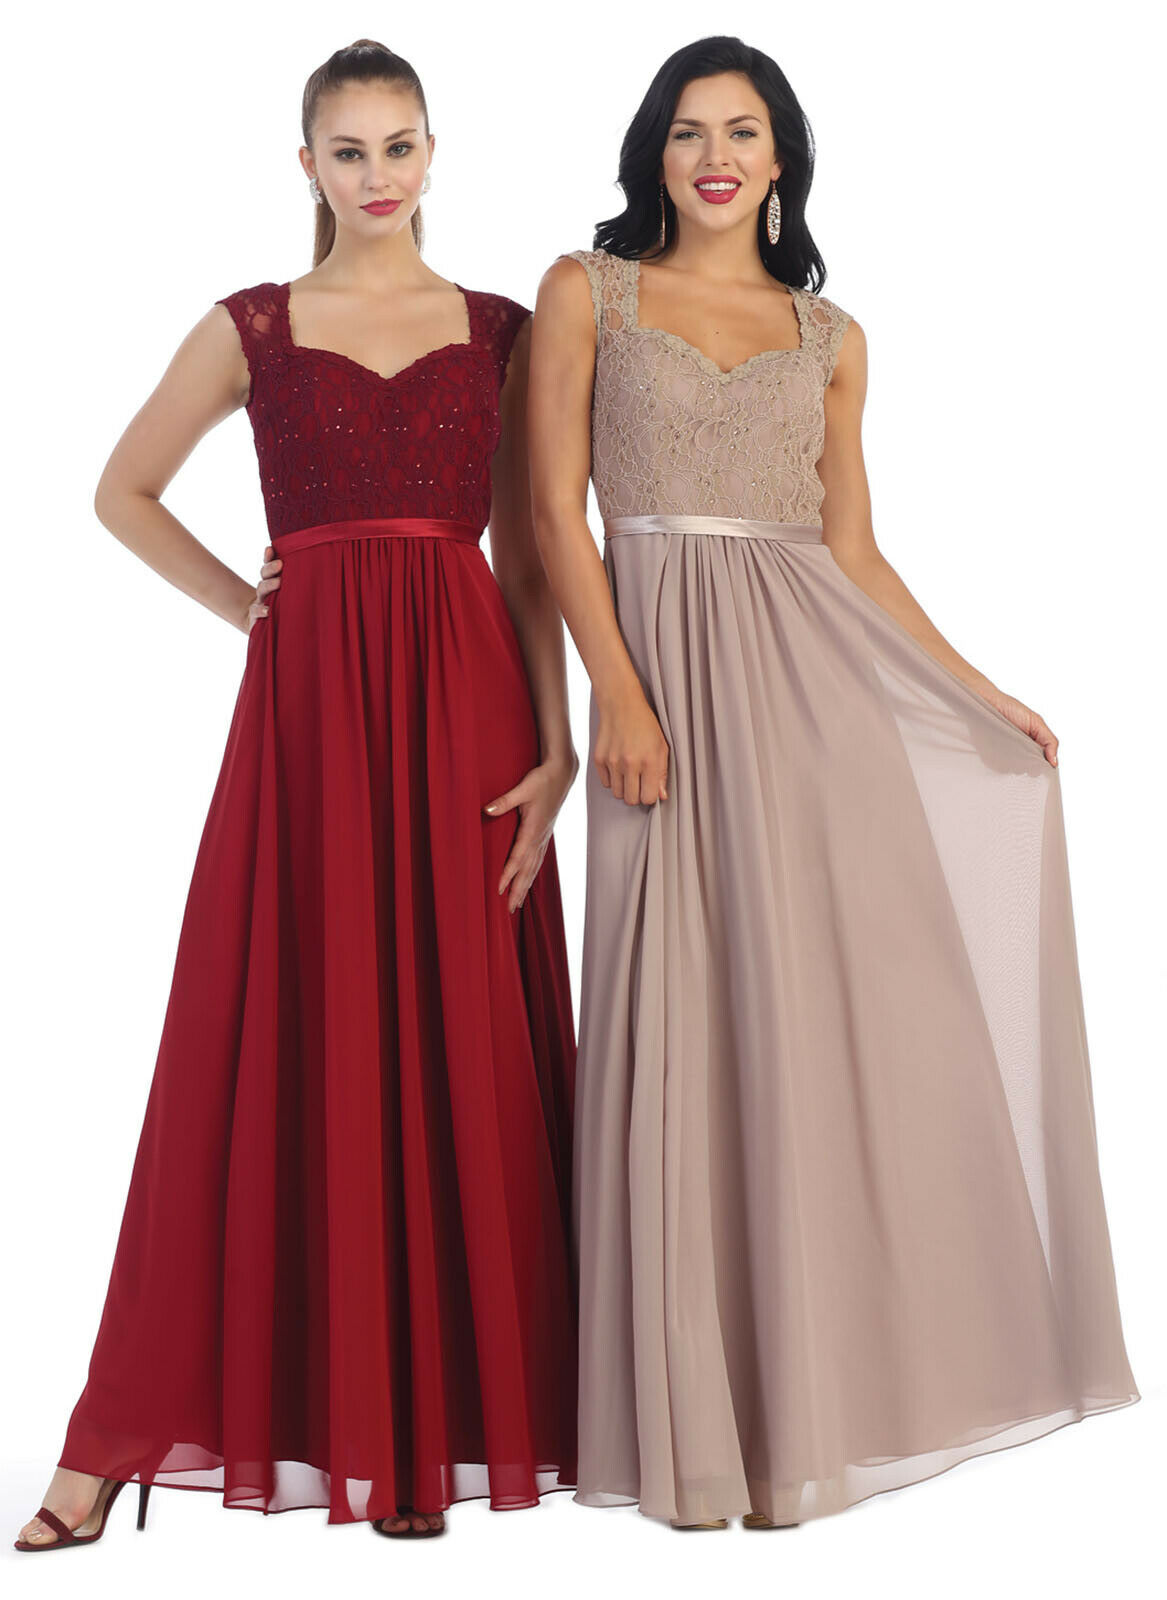 SLEEVELESS LONG FORMAL EVENING GOWN SPECIAL OCCASION DESIGNER DRESS PAGEANT PROM